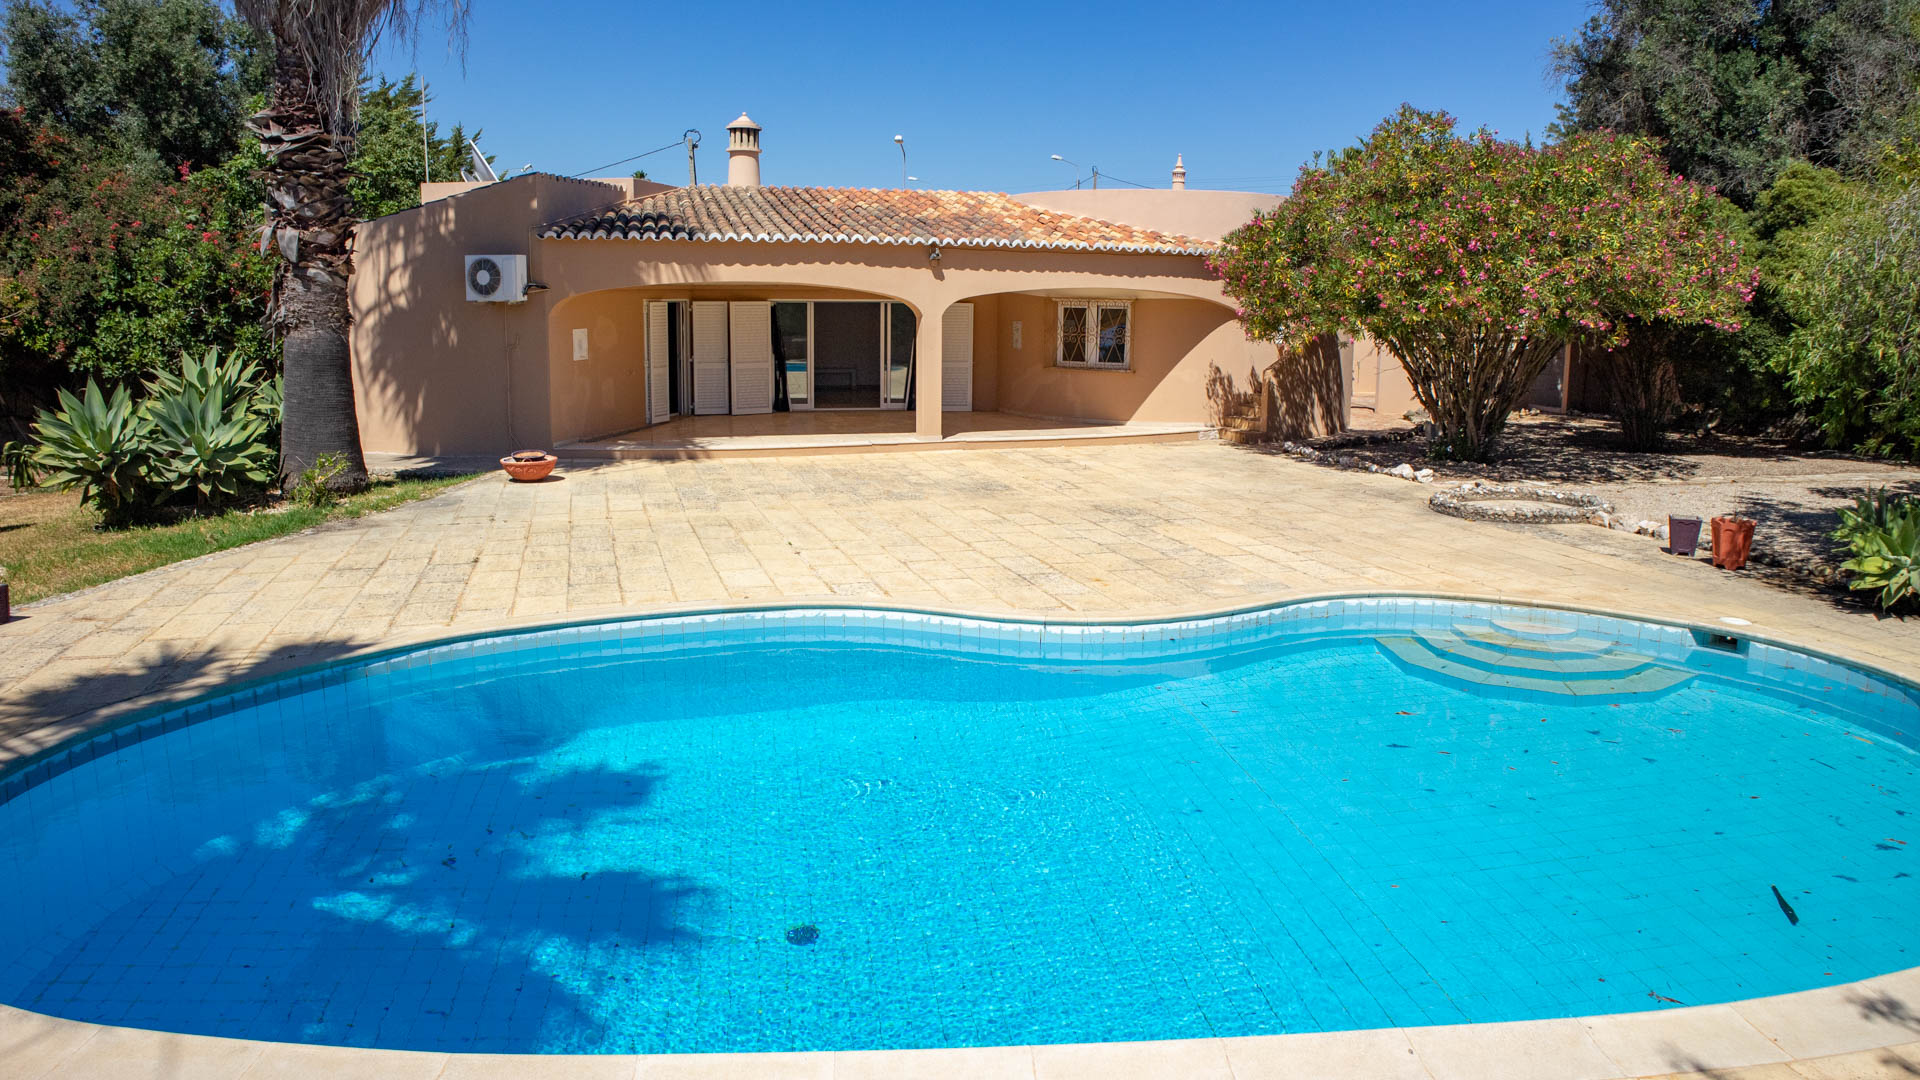 3 bedroom villa with 2 bedroom annex and pool to restore in Carvoeiro | VM1479 3 bedroom villa with attached 2 bedroom annex set on a large plot with private swimming pool. Walking distance to two beaches and town.